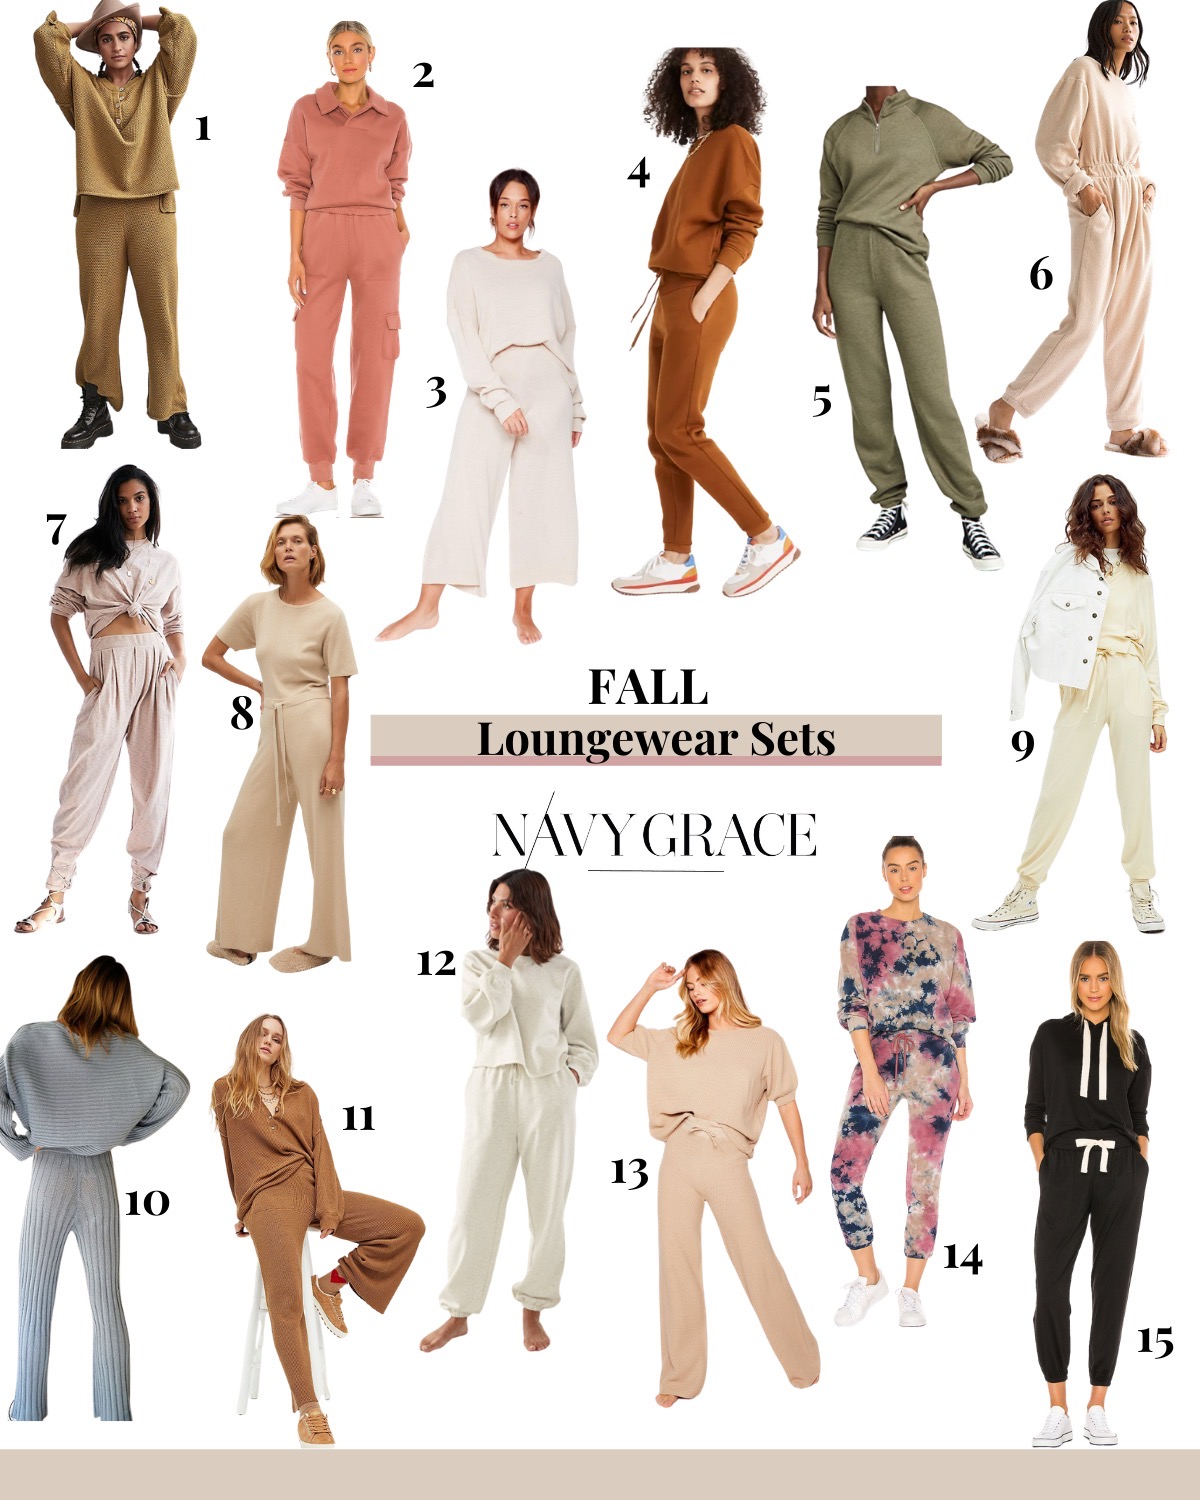 Loungewear Sets by popular San Diego fashion blog, Navy Grace: collage image of various loungewear sets.